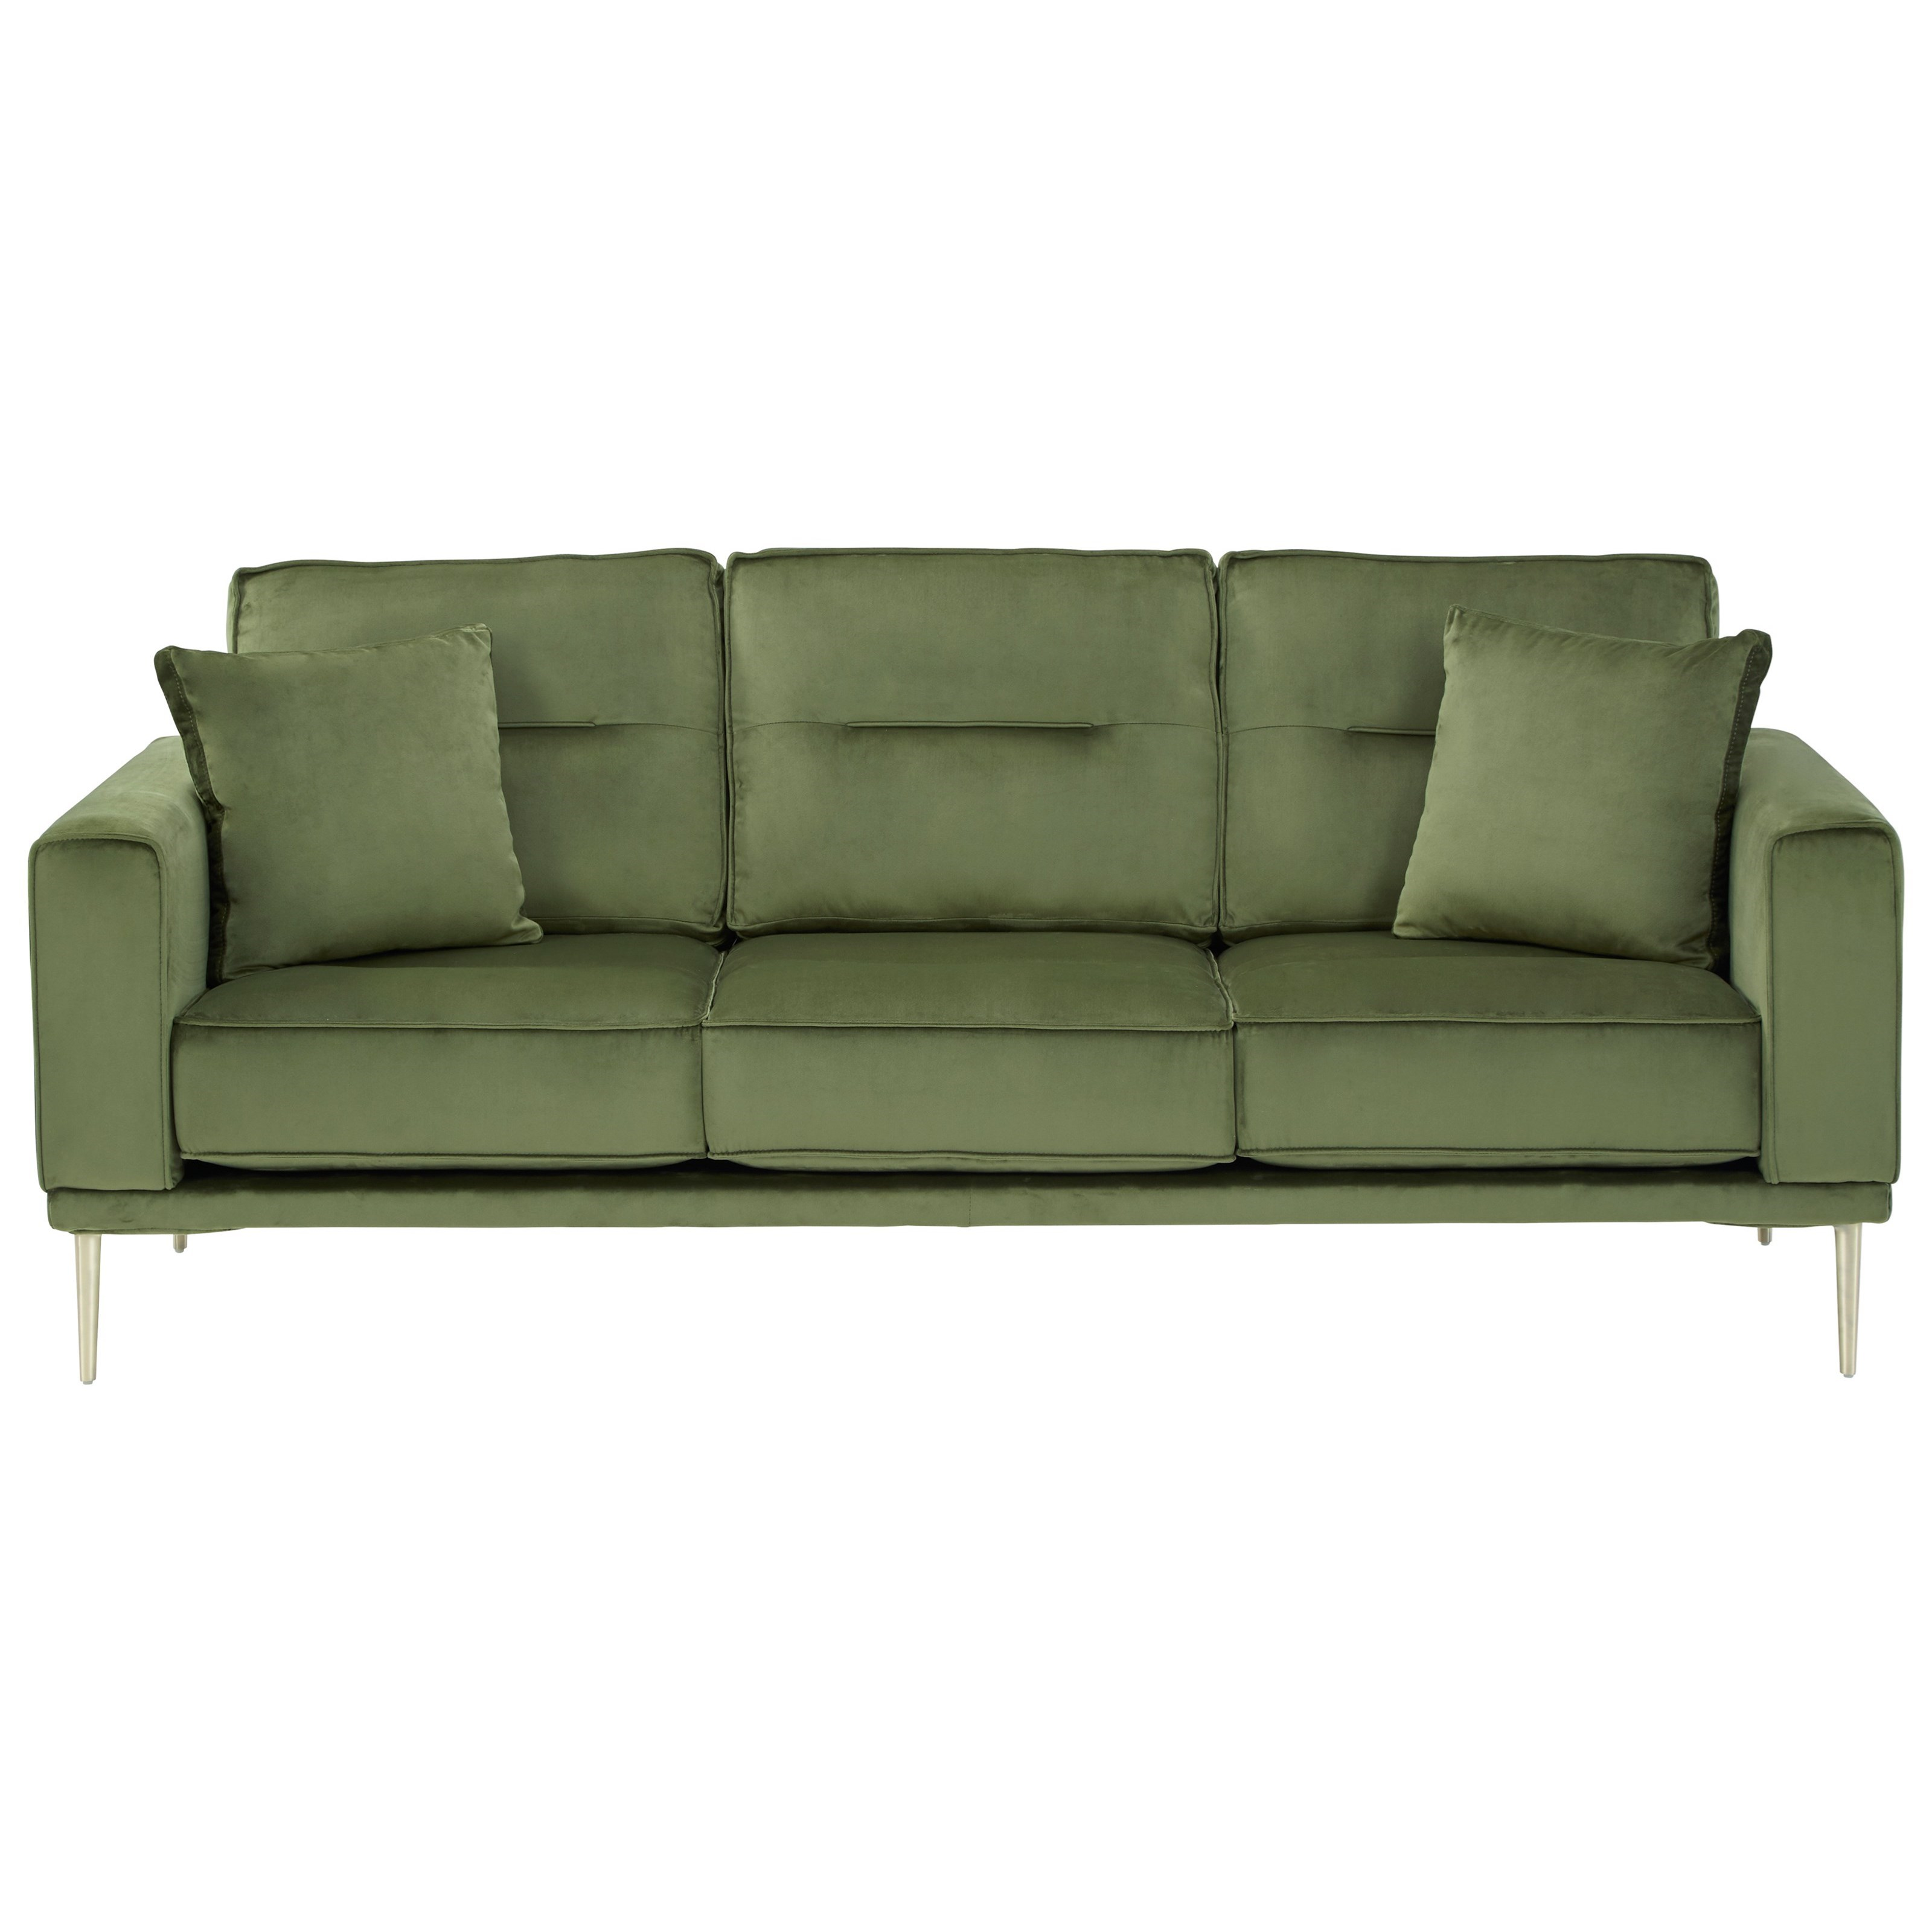 Macleary Sofa by Signature Design by Ashley at Household Furniture